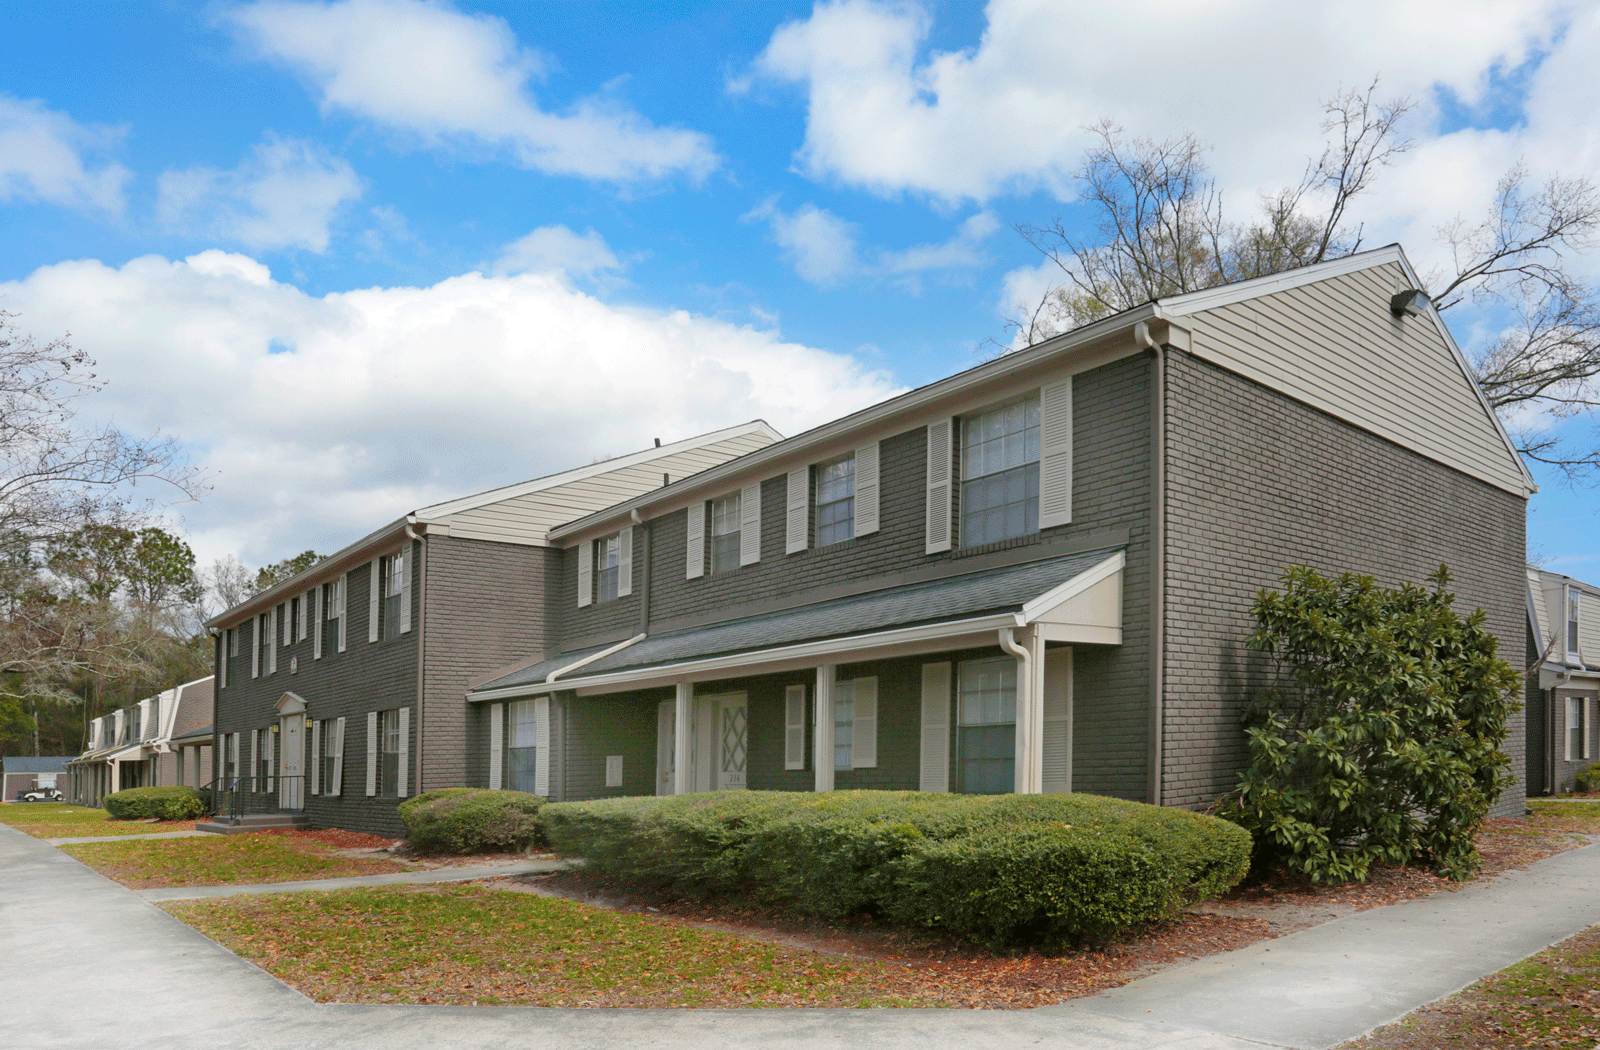 1 Bedroom Apartments Jacksonville Fl Colonial Forest Apartments Apartments In Jacksonville Fl